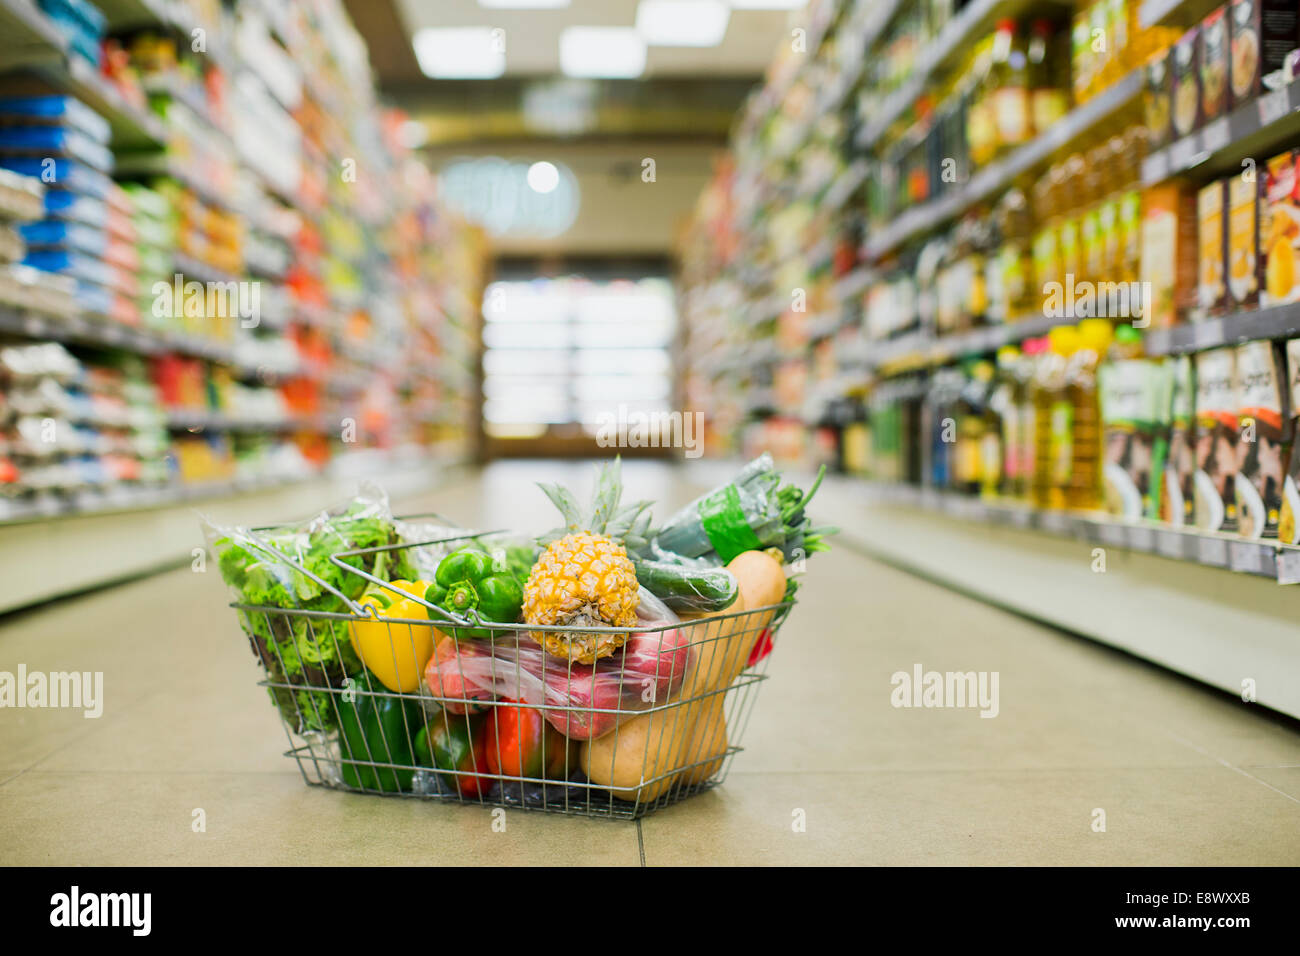 Close Up Of Full Shopping Basket On Floor Of Grocery Store